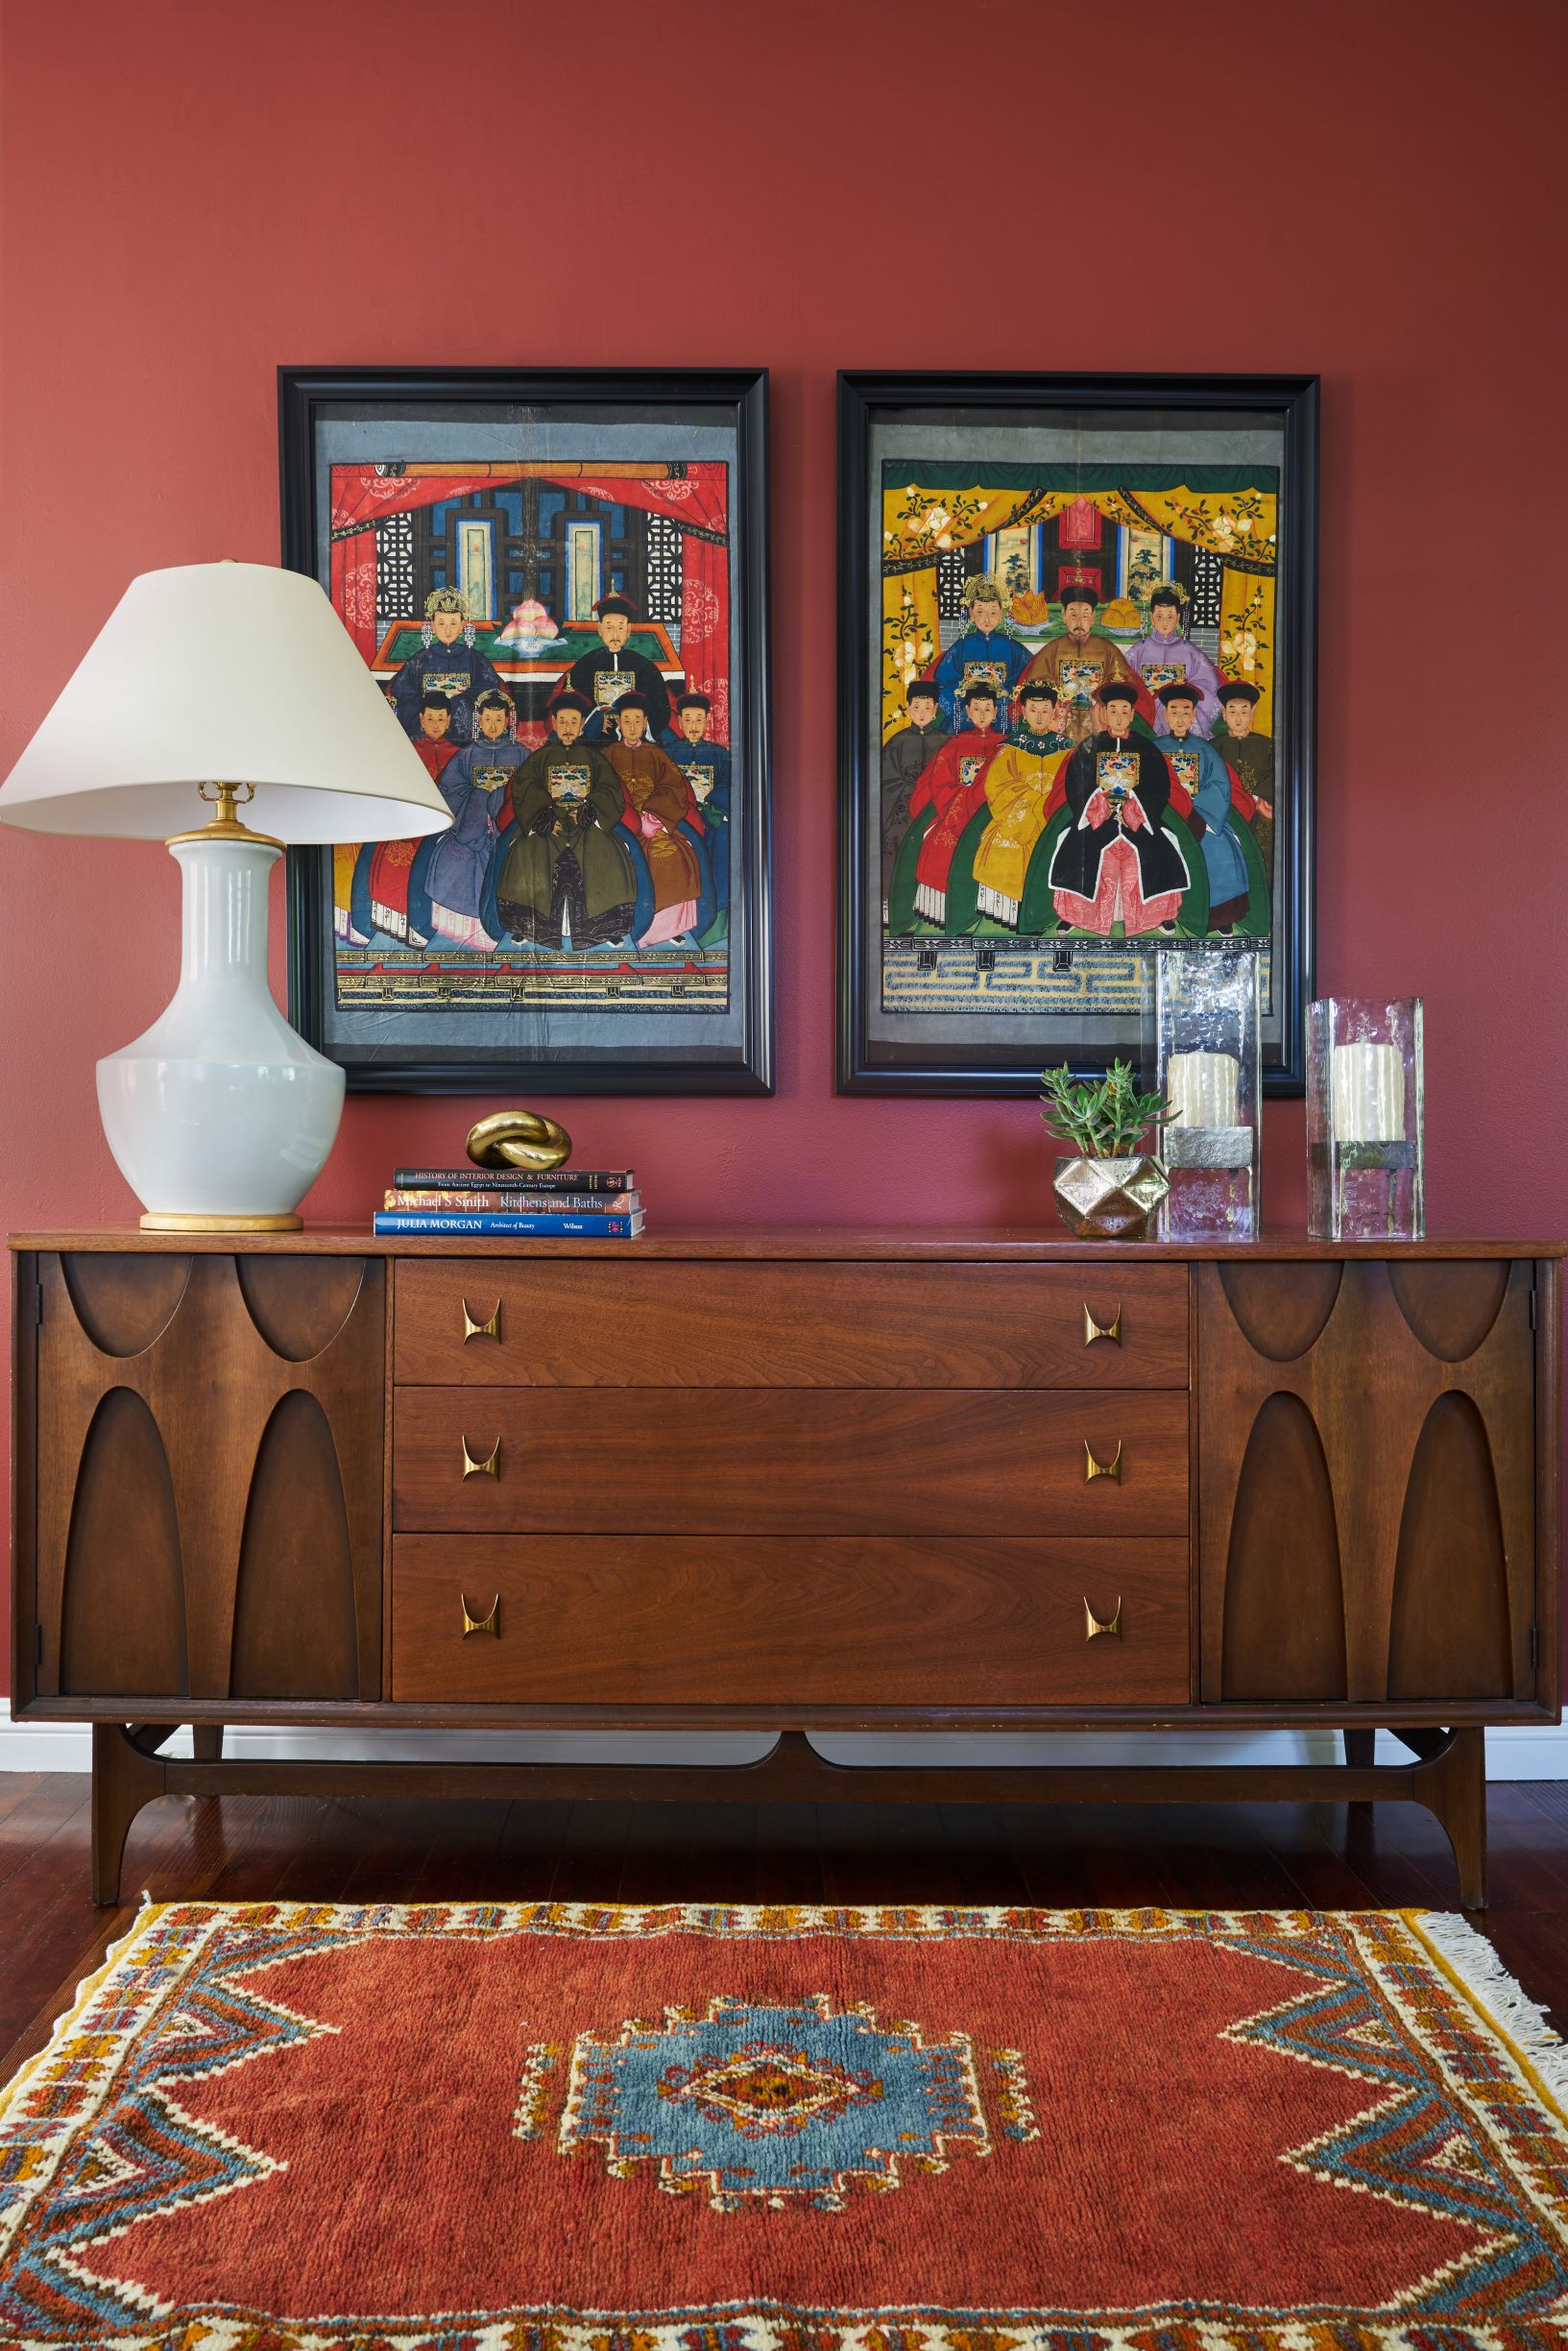 Dunn-Edwards Color of the Year - Spice of LIfe - Dining Room